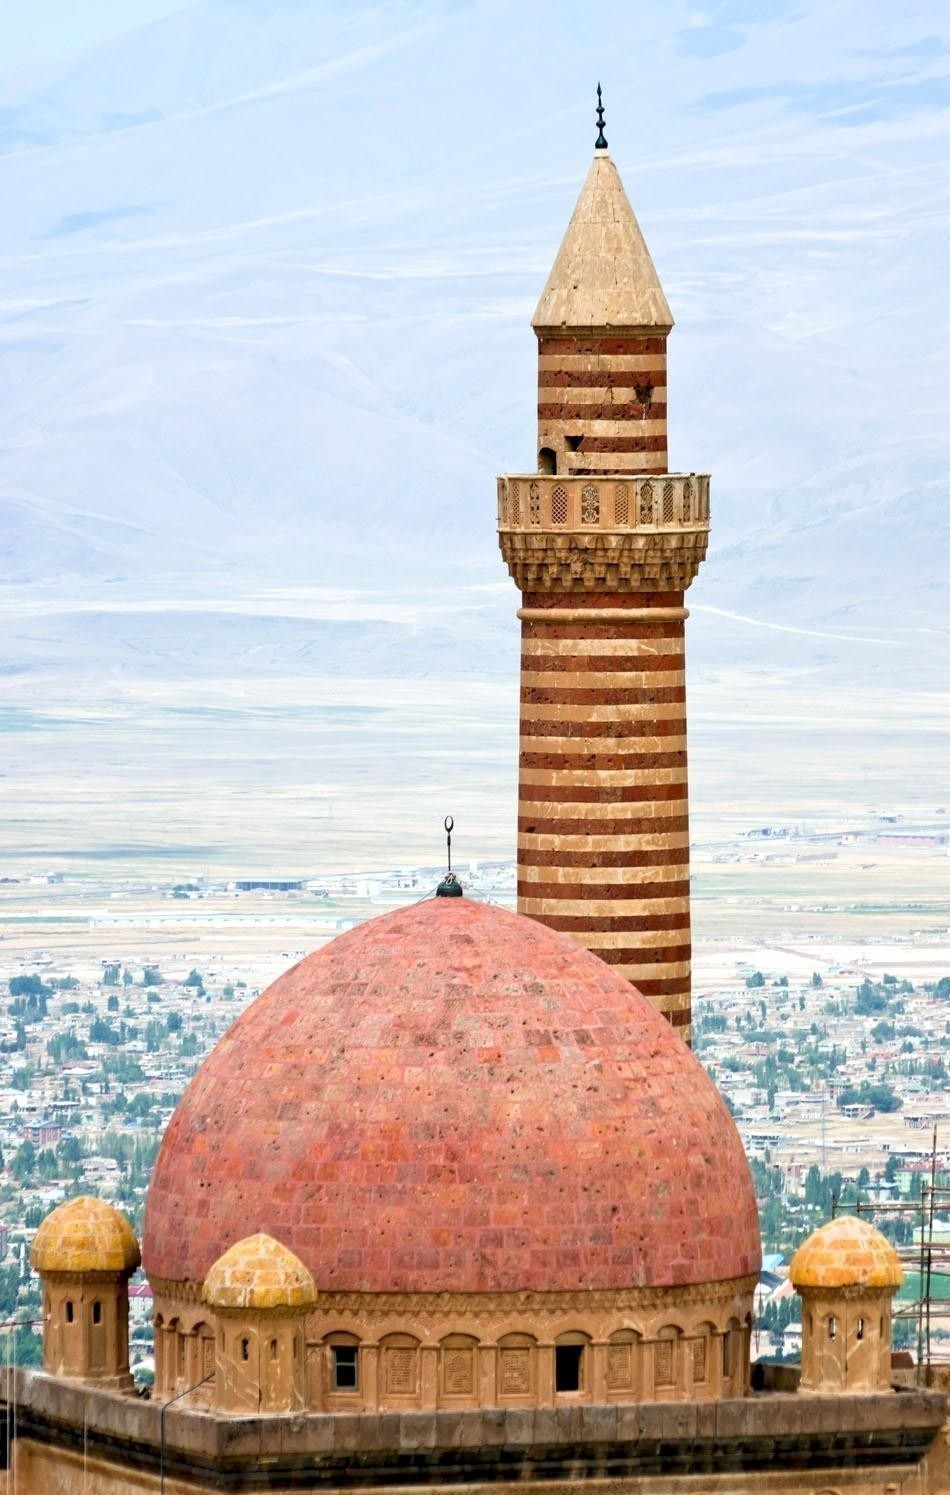 The minaret of Ishak Pasha`s palace in eastern Turkey | Turkey Travel Guide